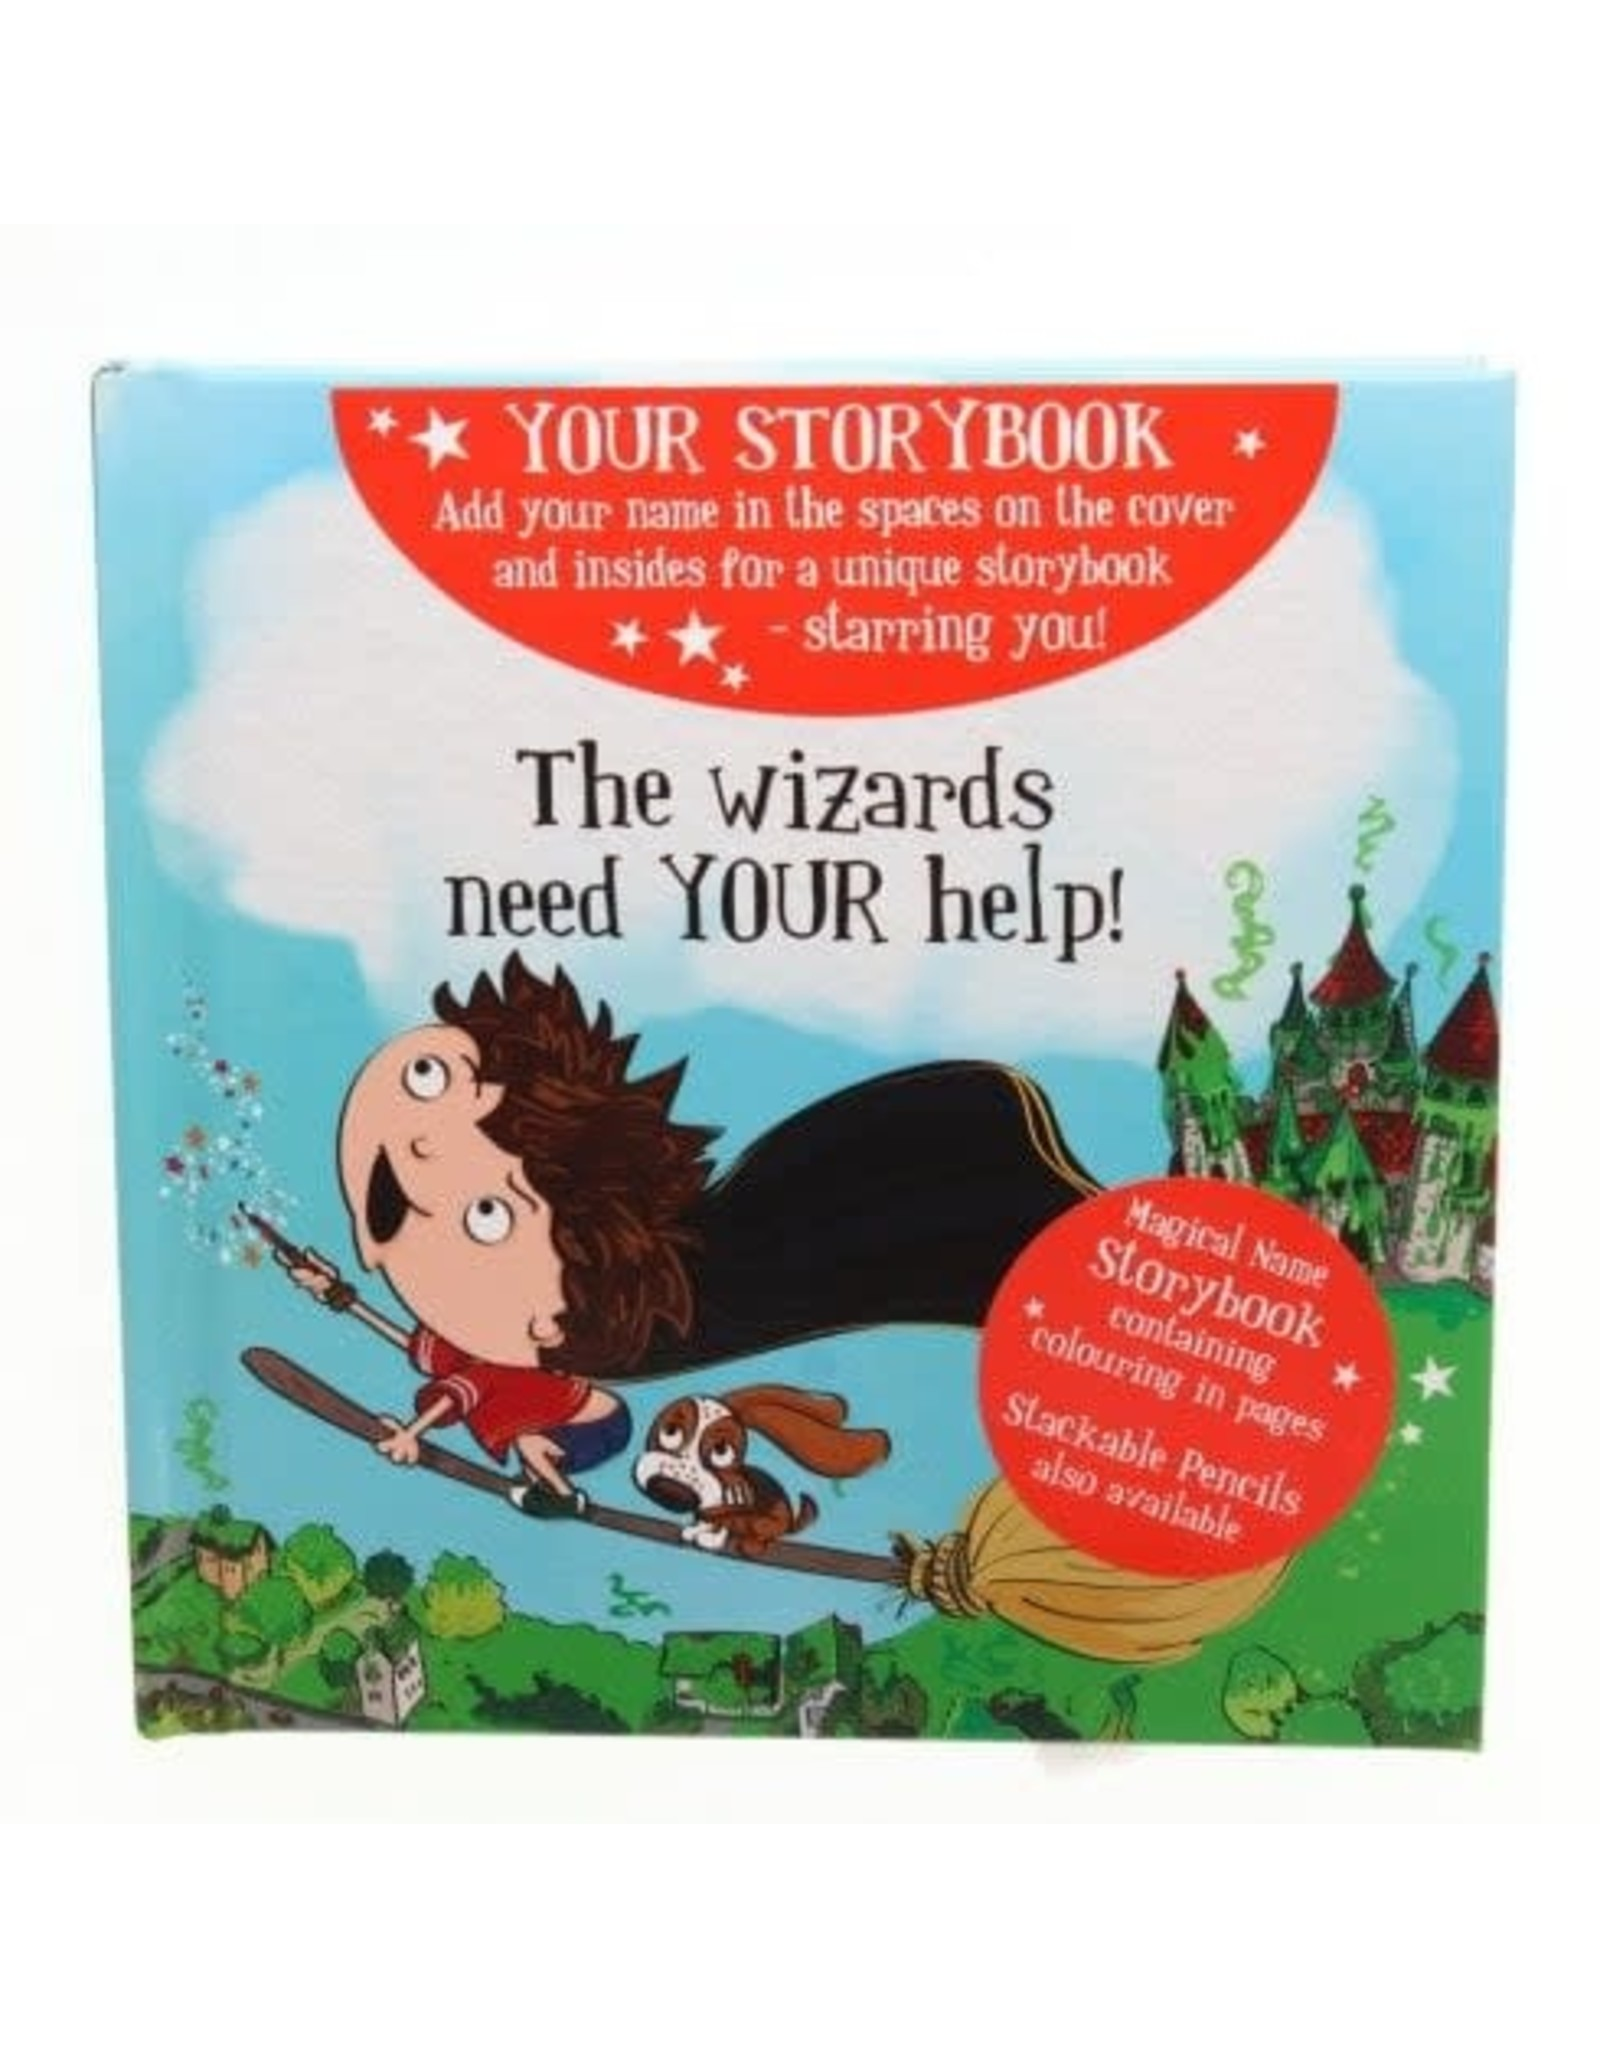 History & Heraldry Magical Name Story Book - Blank